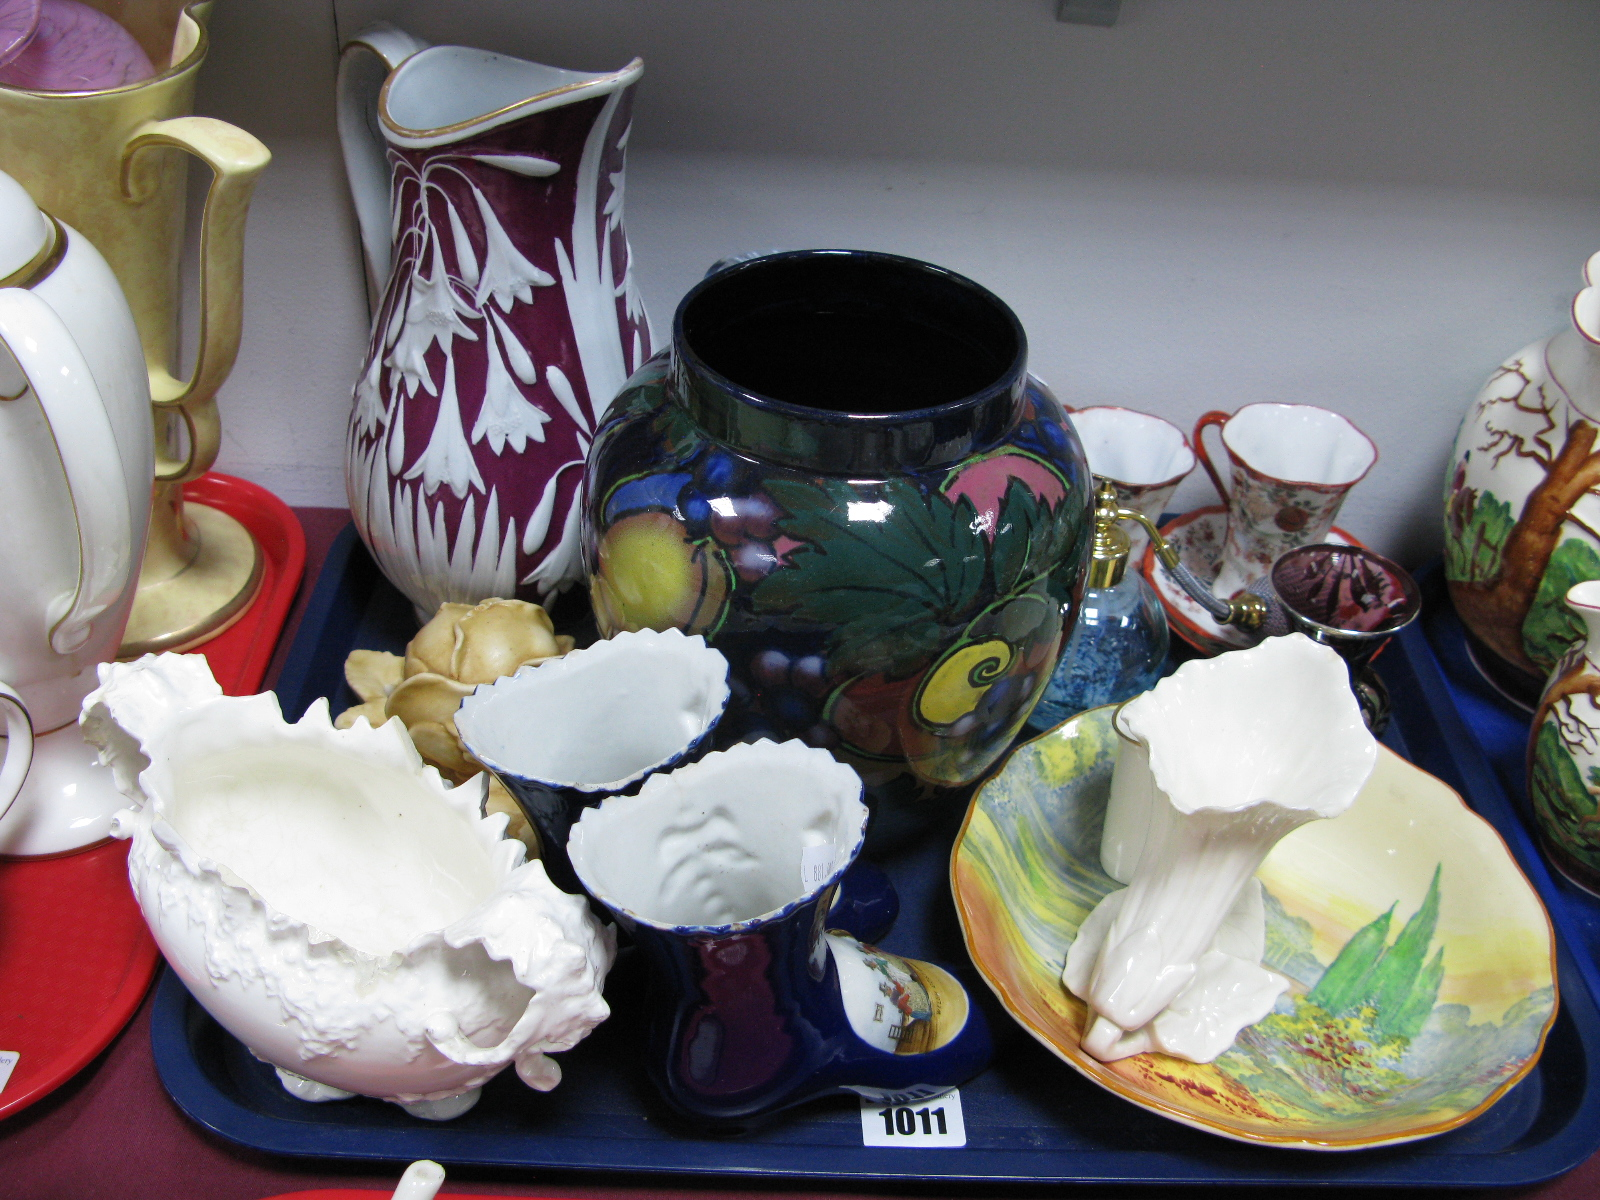 Lot 1011 - A Royal Worcester China Works Flowerhead Vase, Doulton Woodley Dale dish, Caithness atomiser,